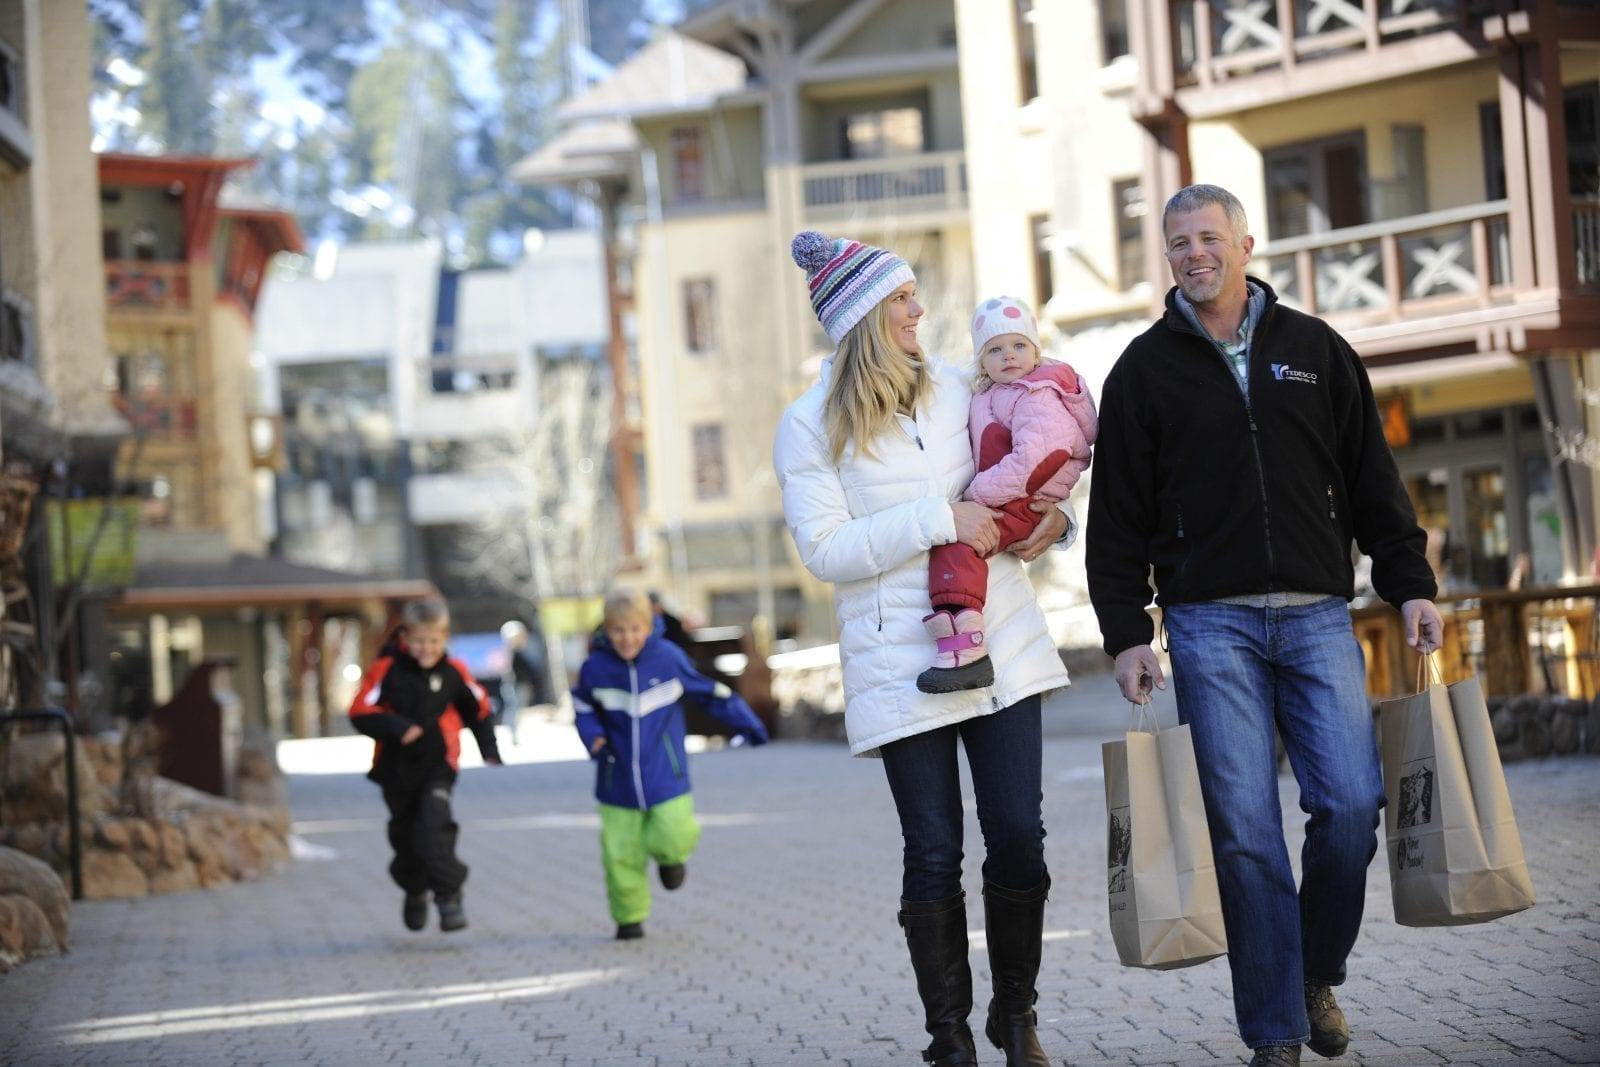 Shopping North Lake Tahoe is an experience like nowhere else!